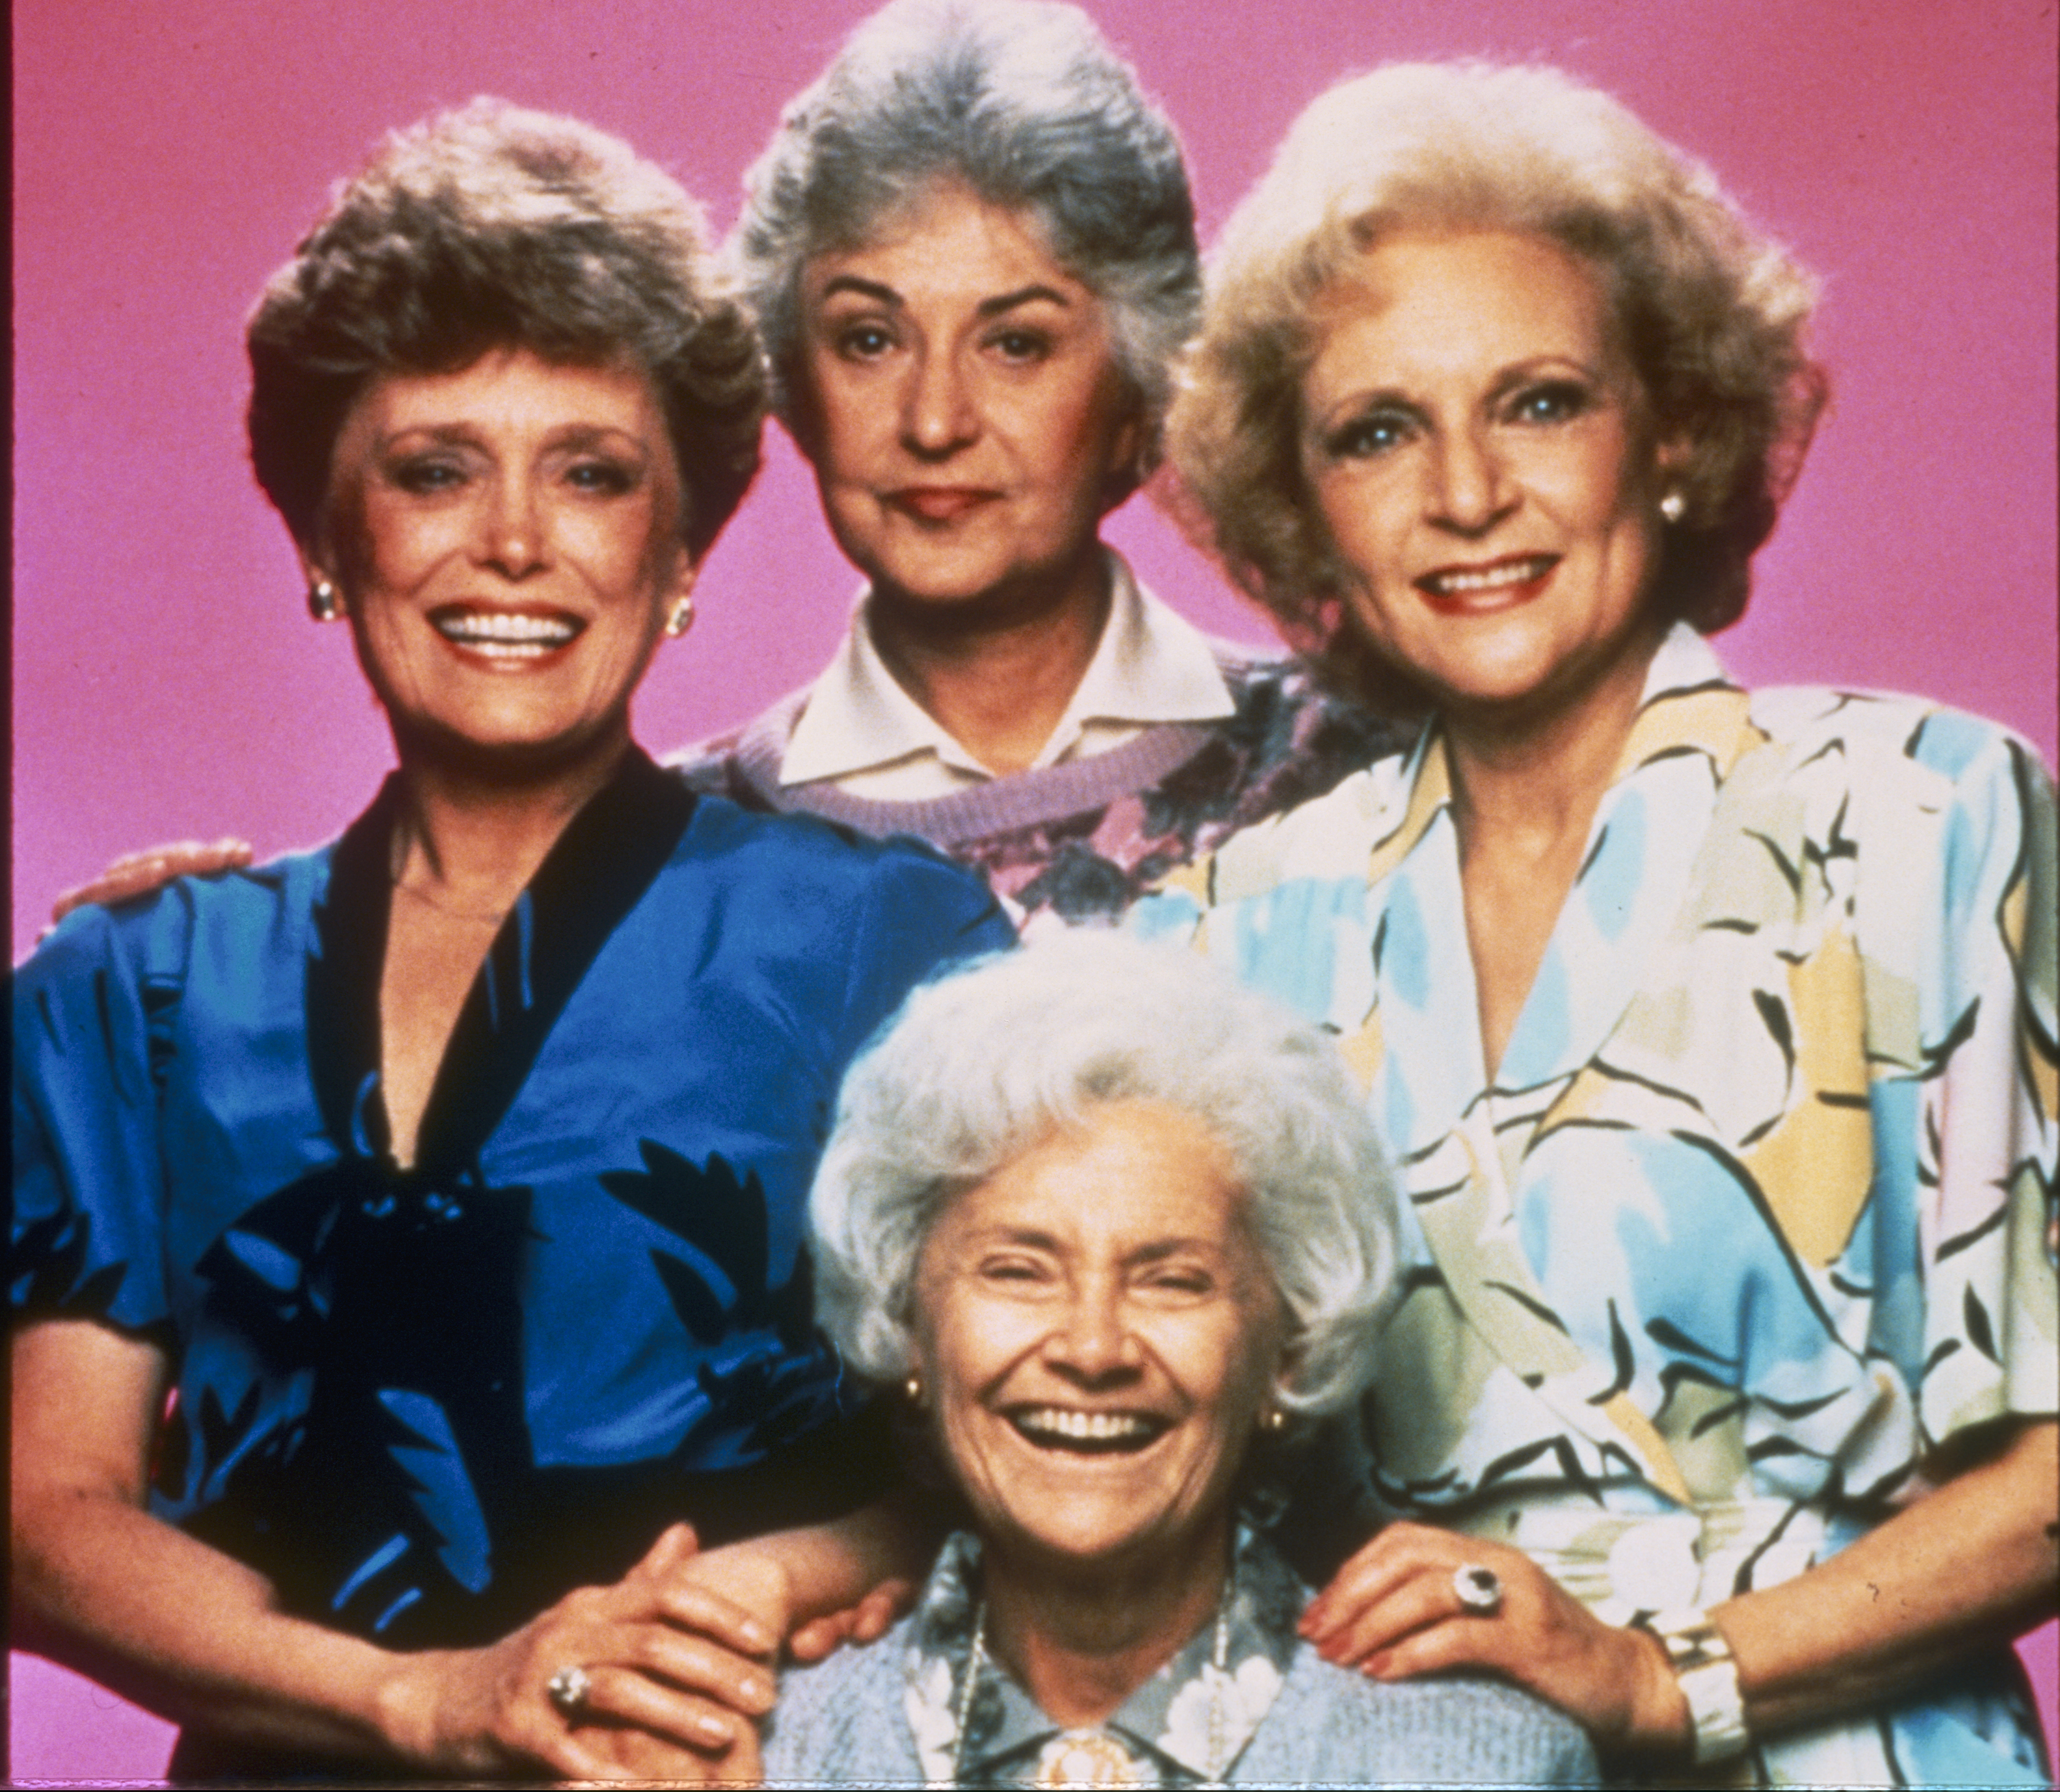 Bea Arthur, Betty White, Rue McClanahan and Estelle Getty in  Golden Girls.